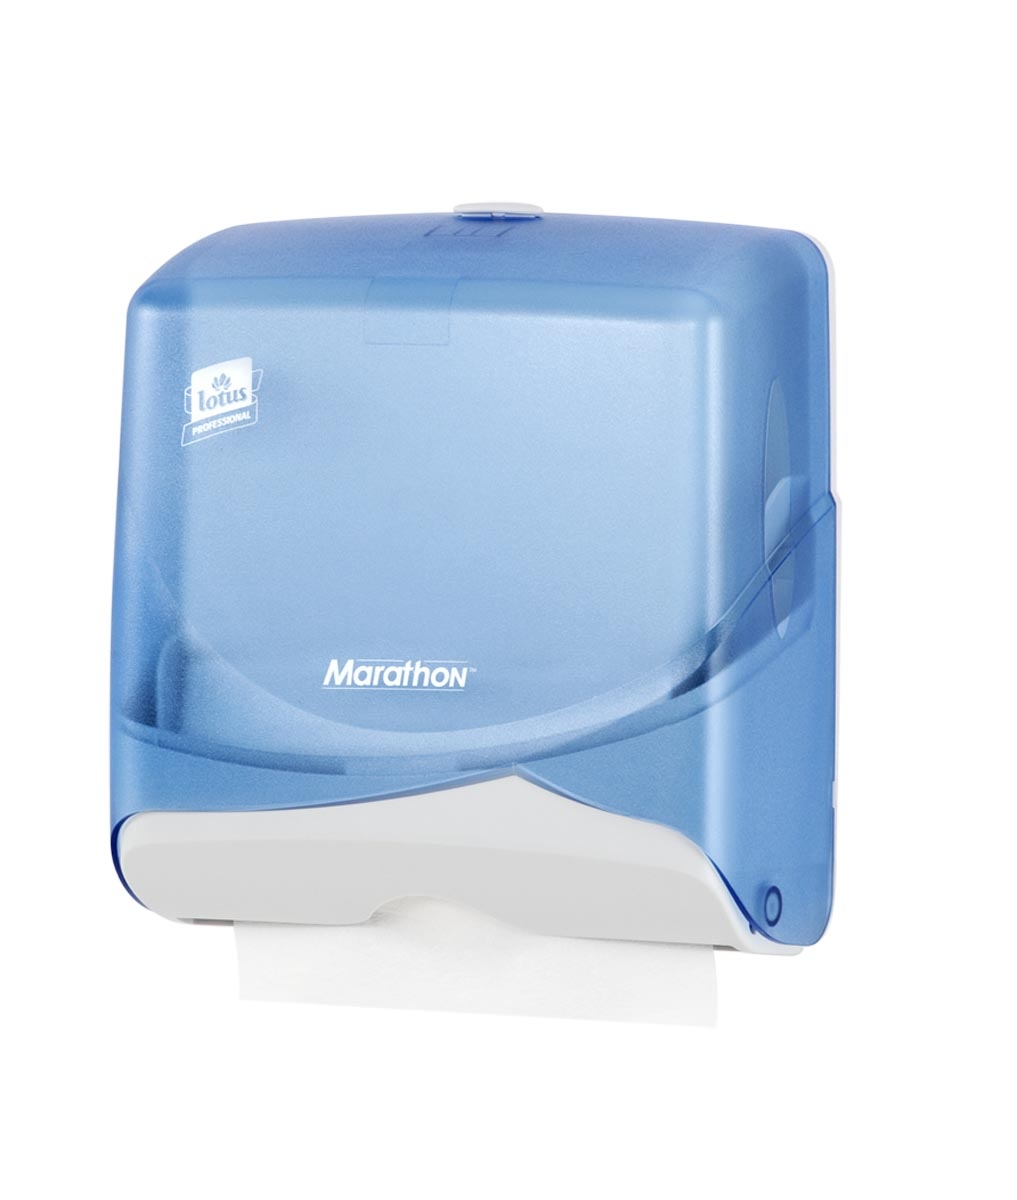 Paper Hand Towel Dispenser Lotus Marathon Blue Mini